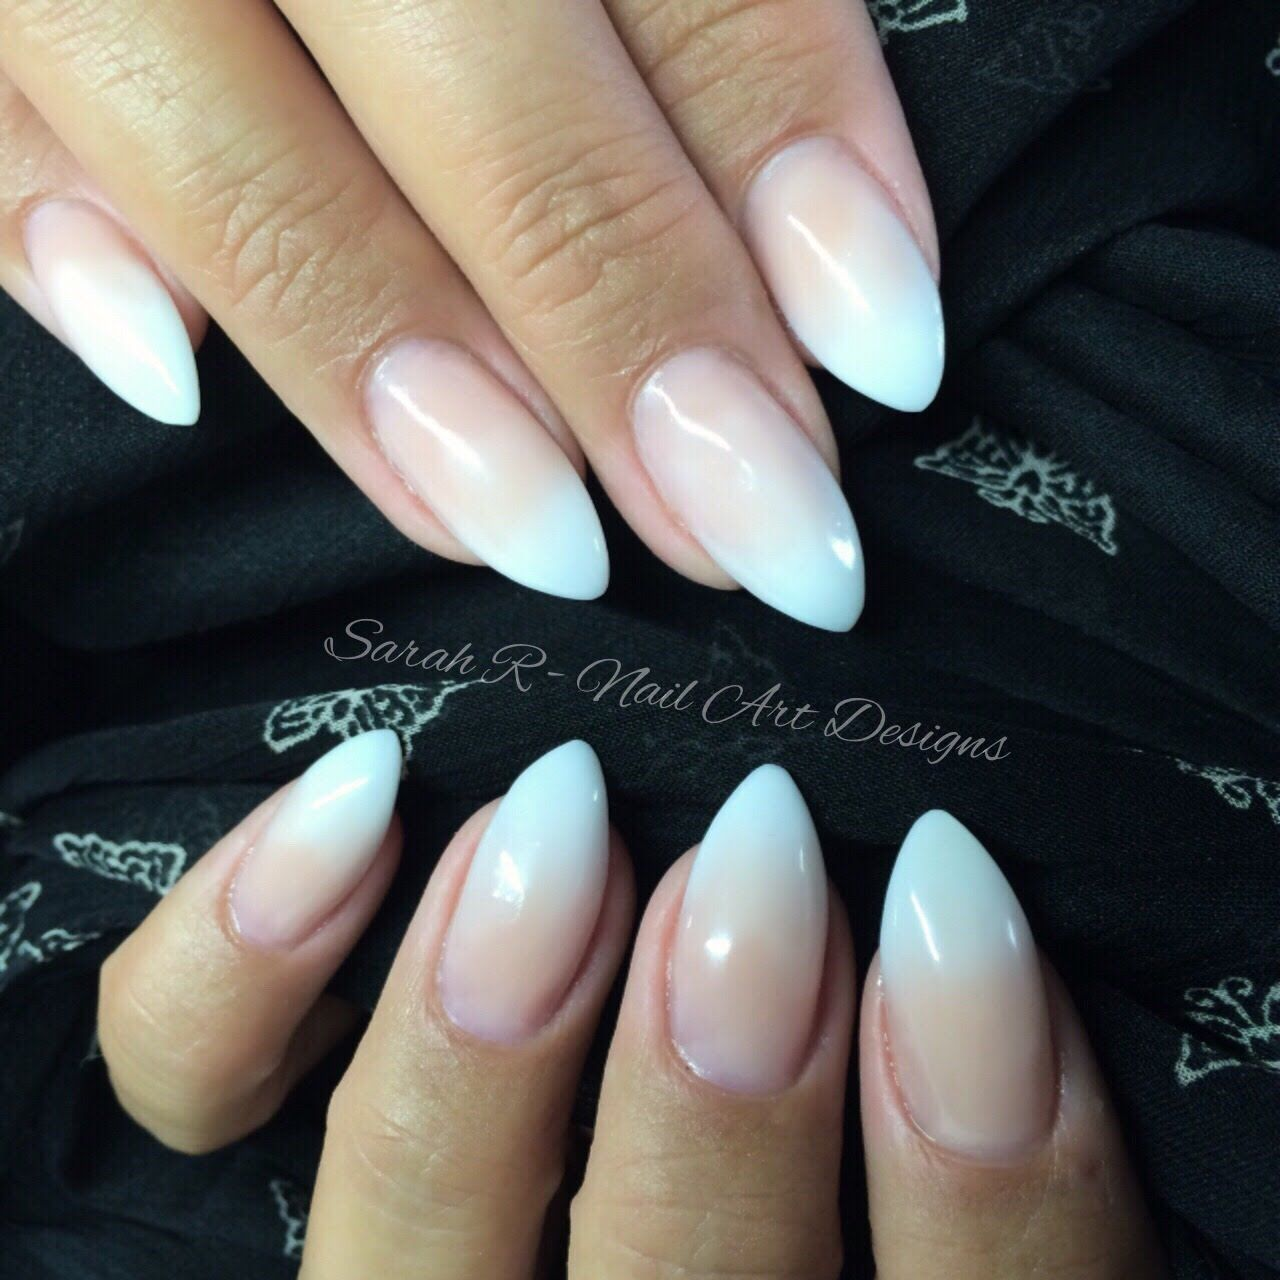 Acrylic Nails French: Faded Ombré French Acrylic Nails